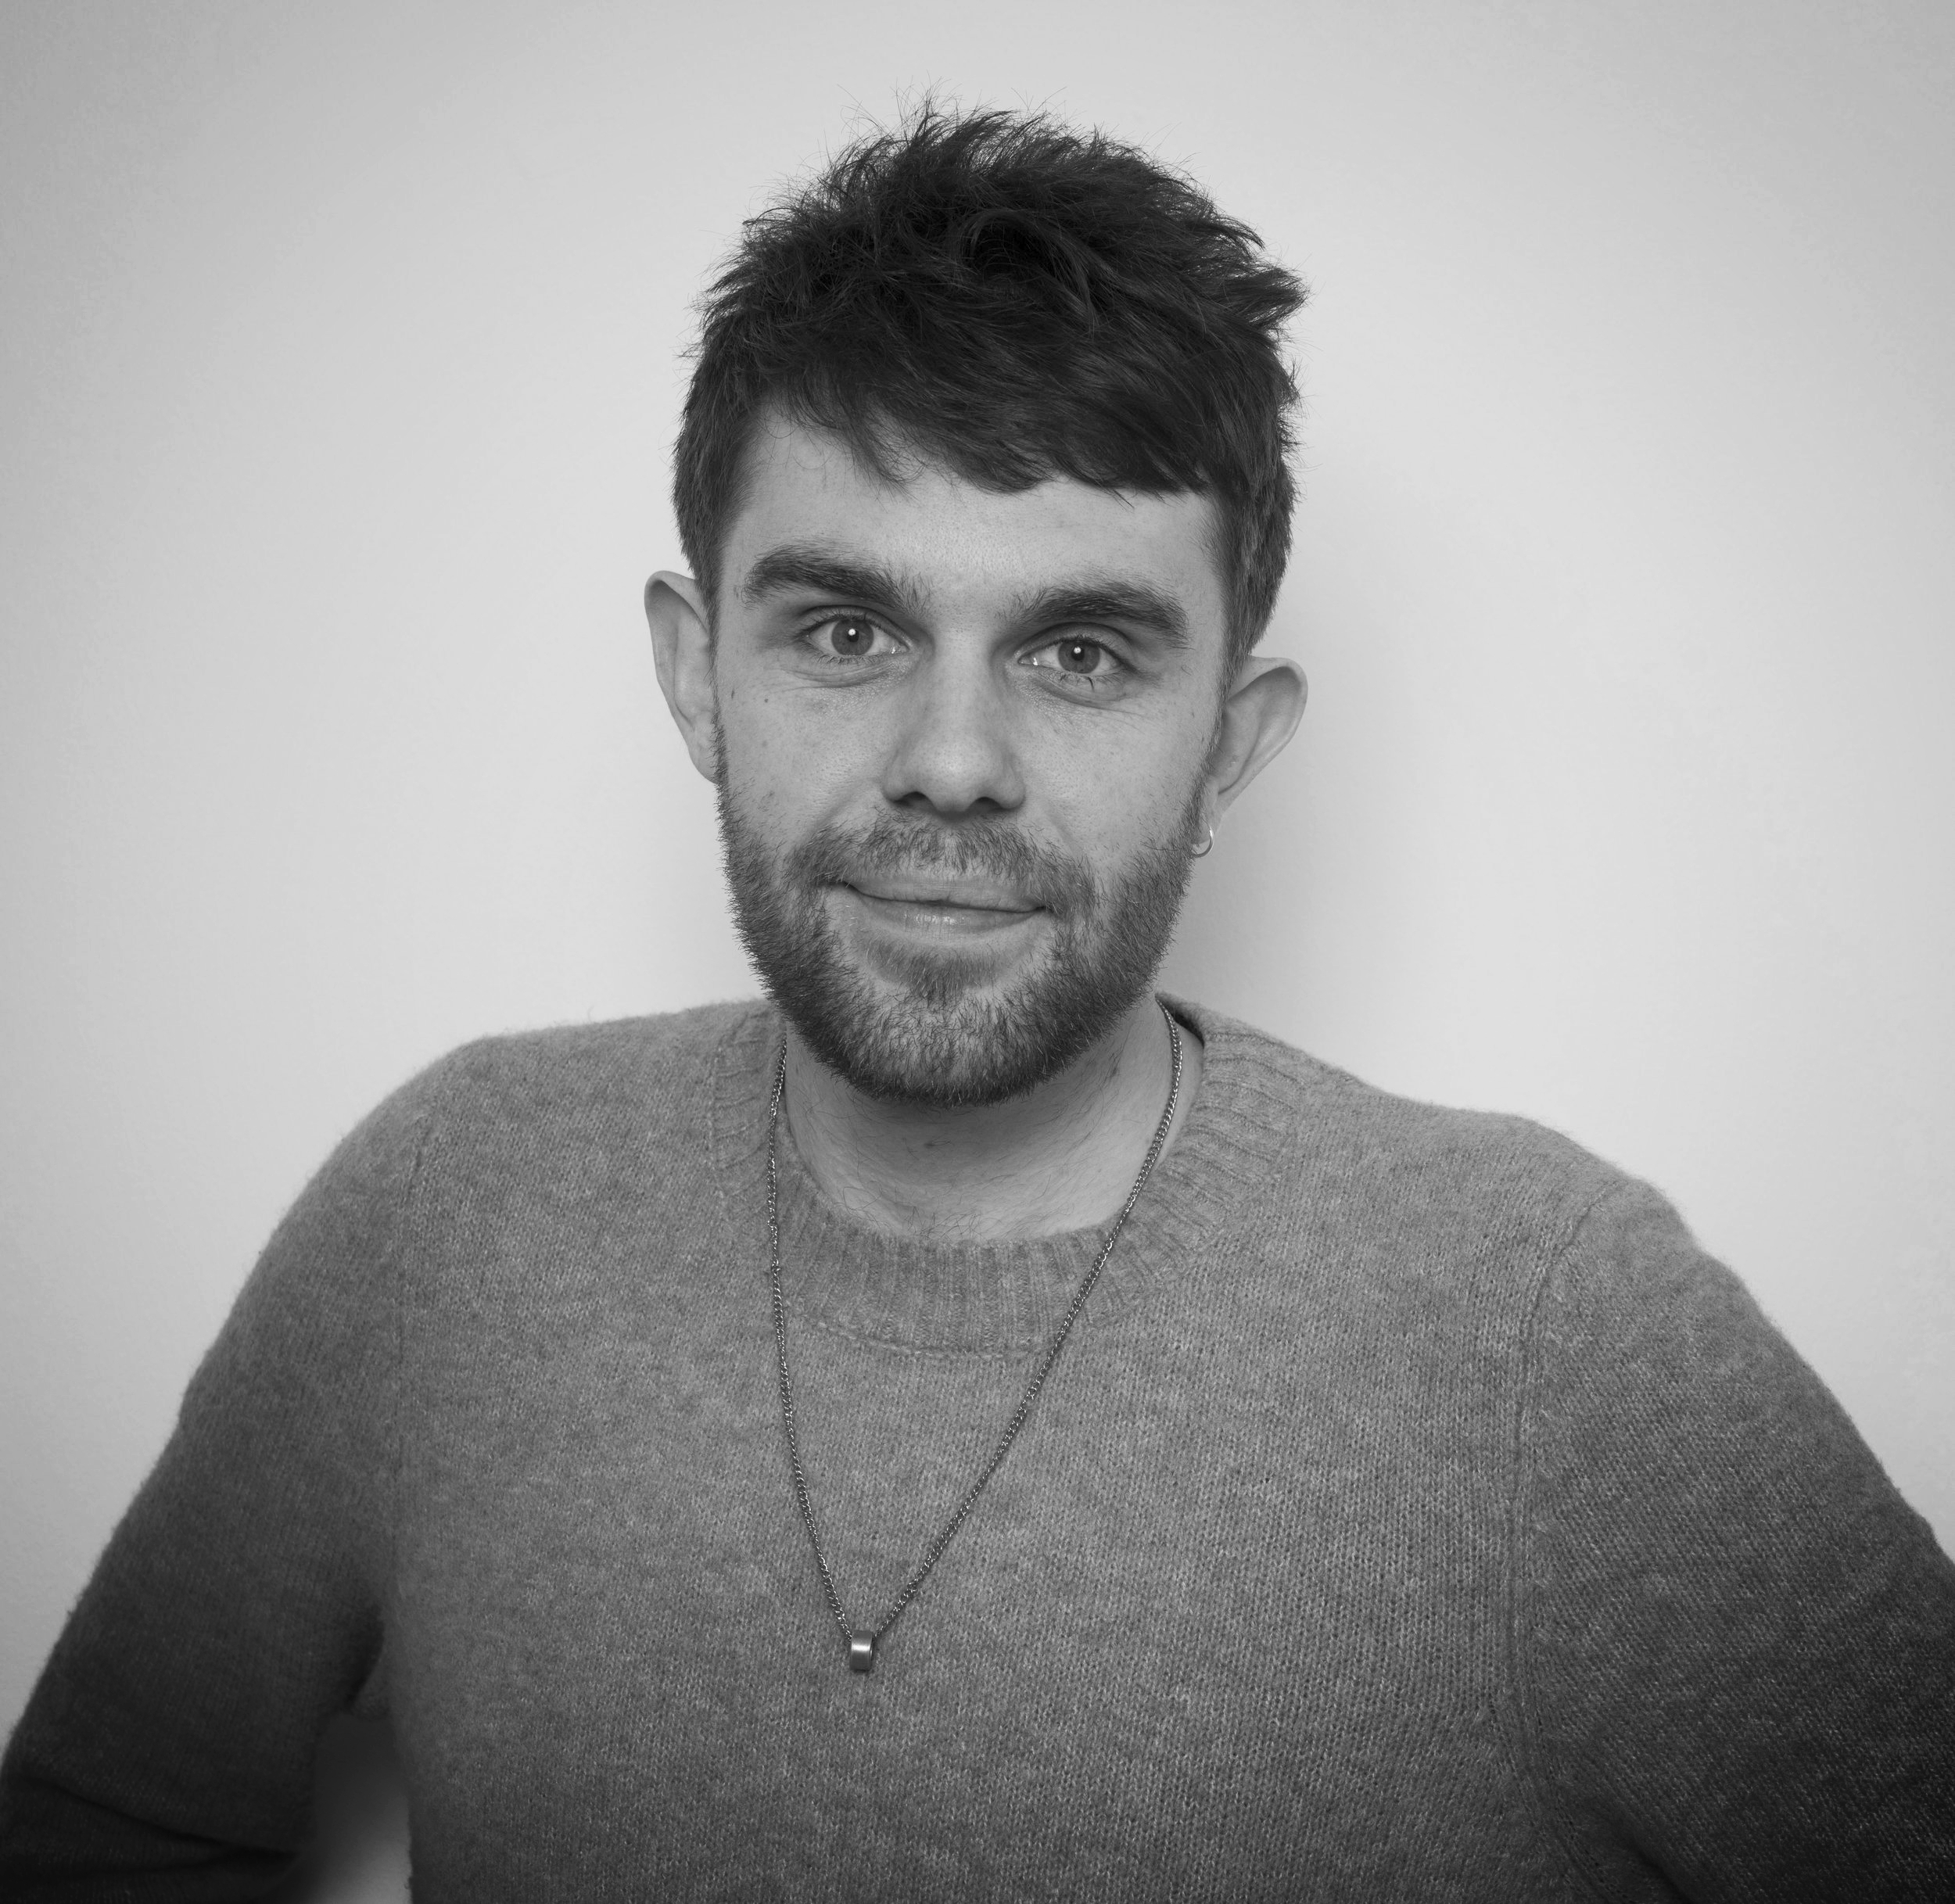 <b>Andrew Skinner</b><br>Account Manager, Tech